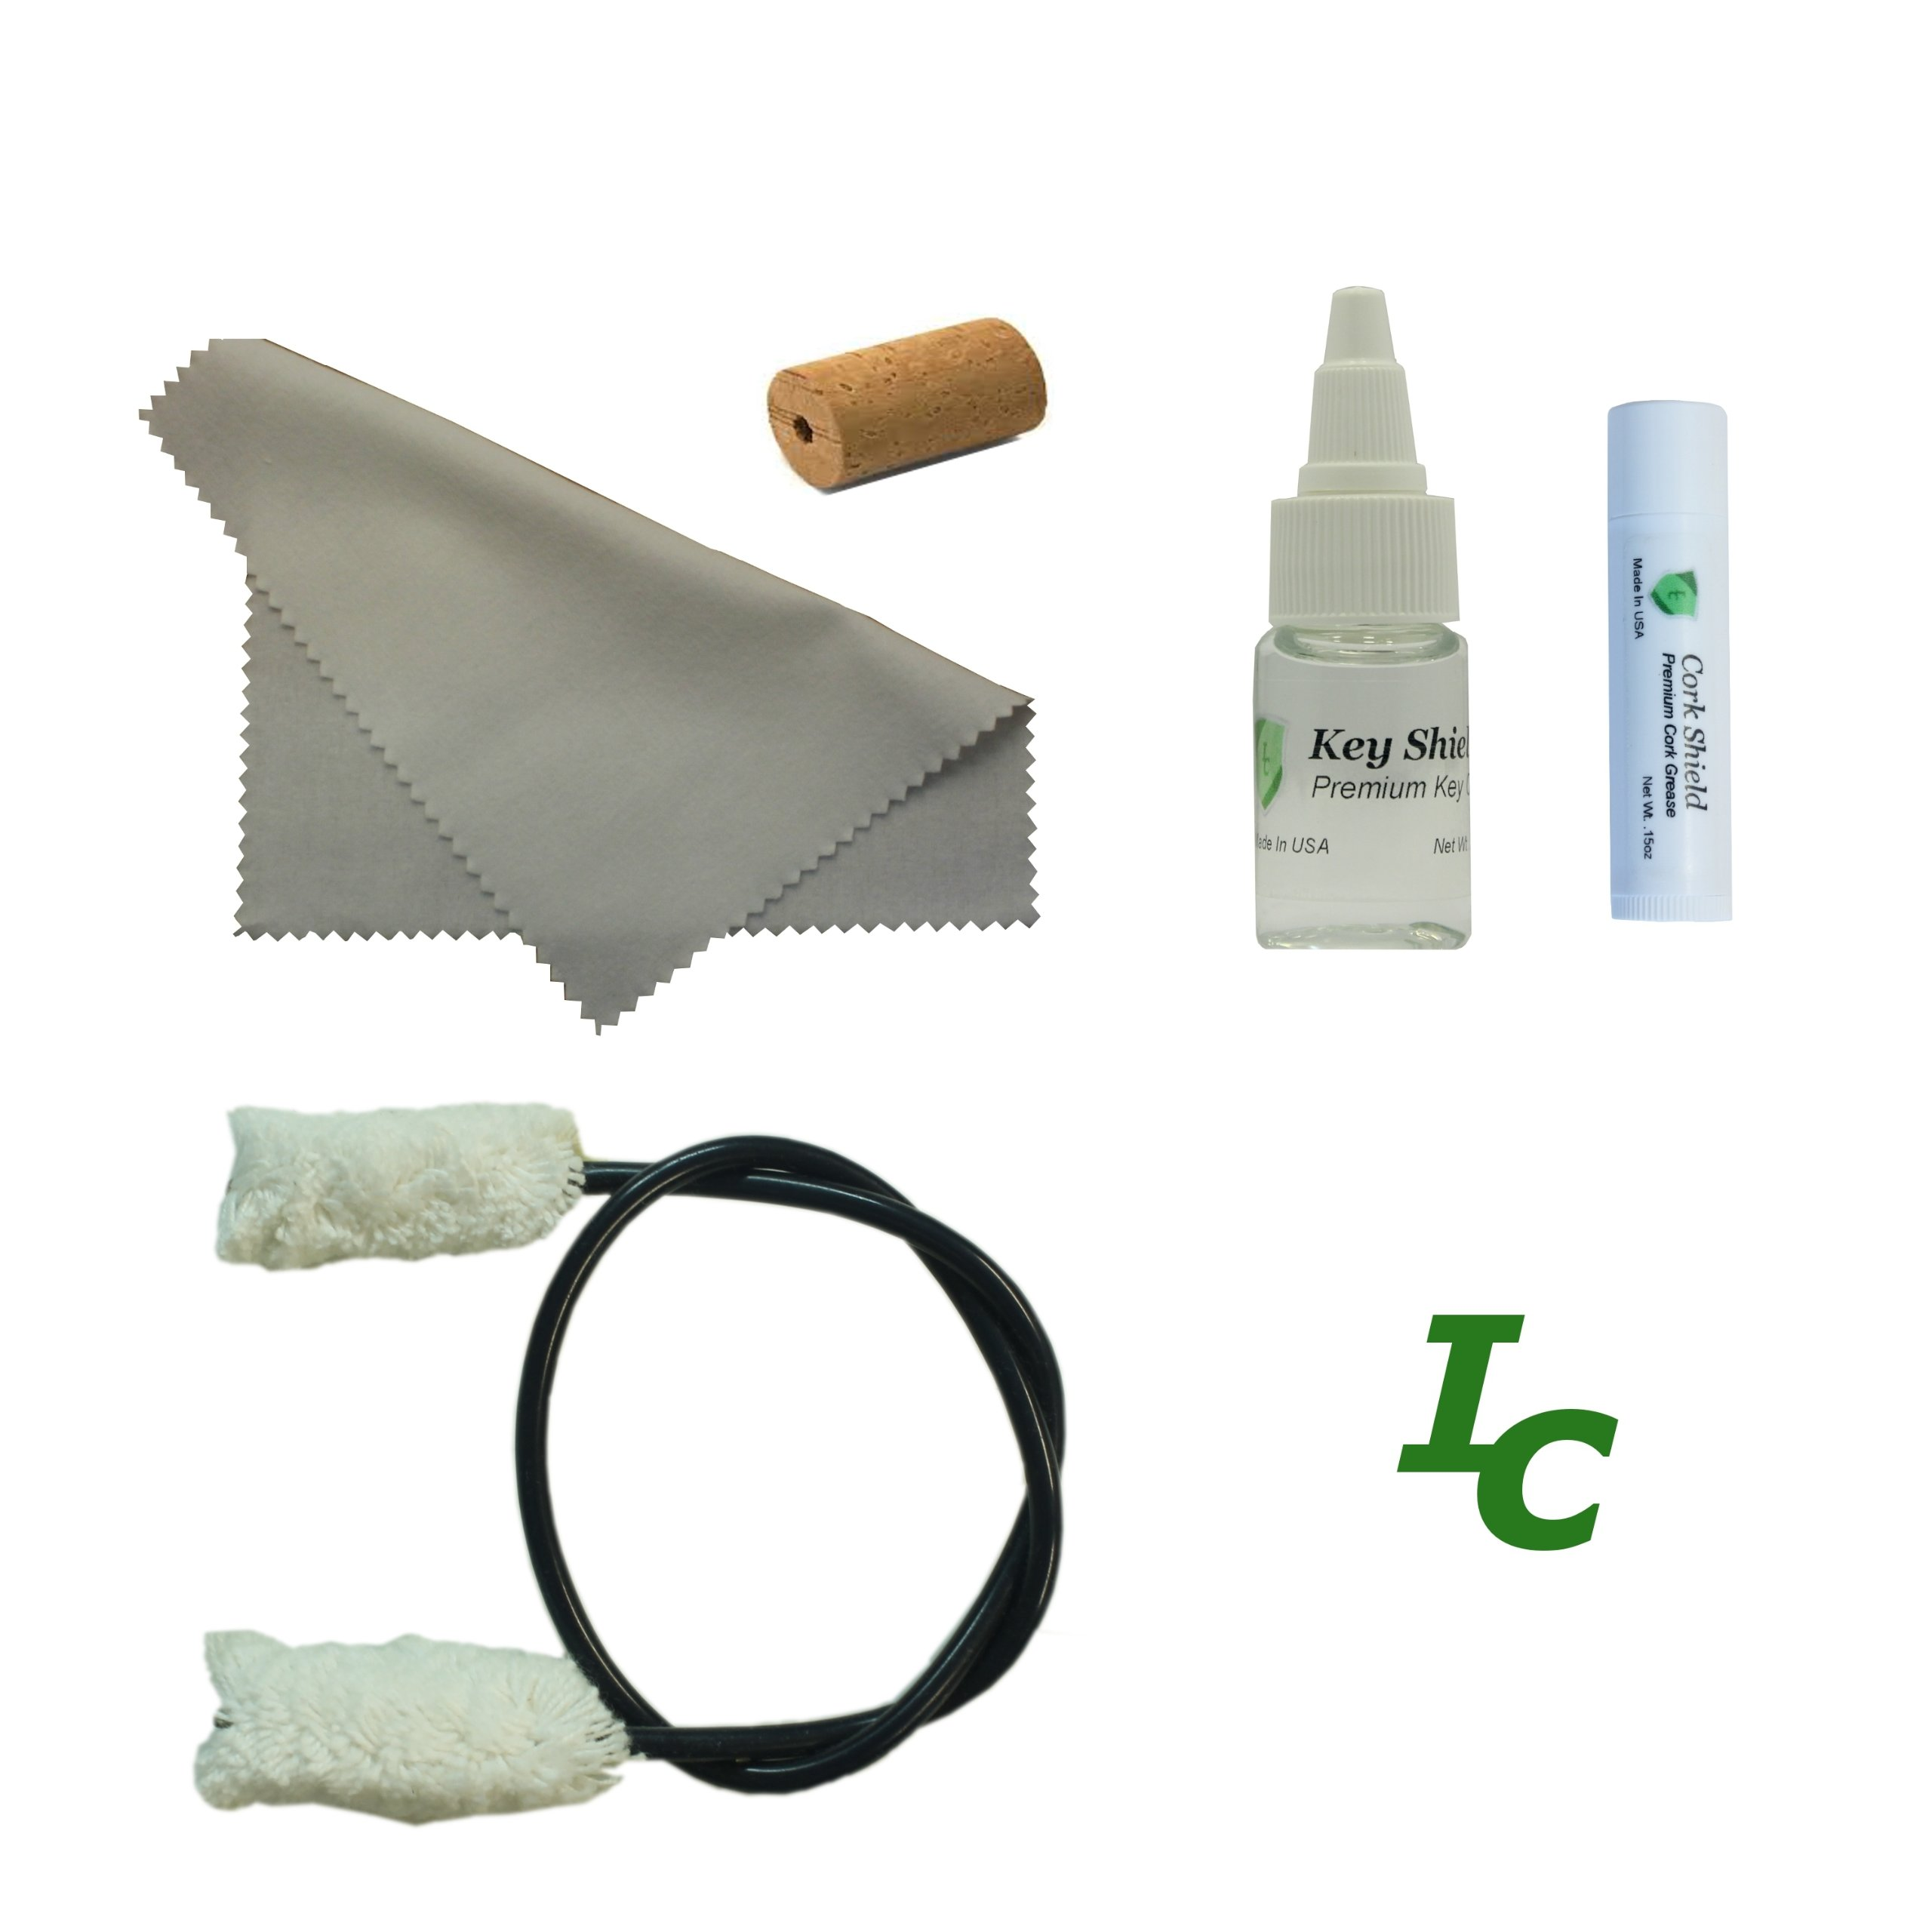 Instrument Clinic Flute Maintenance Kit with Flexible Cleaning Swab